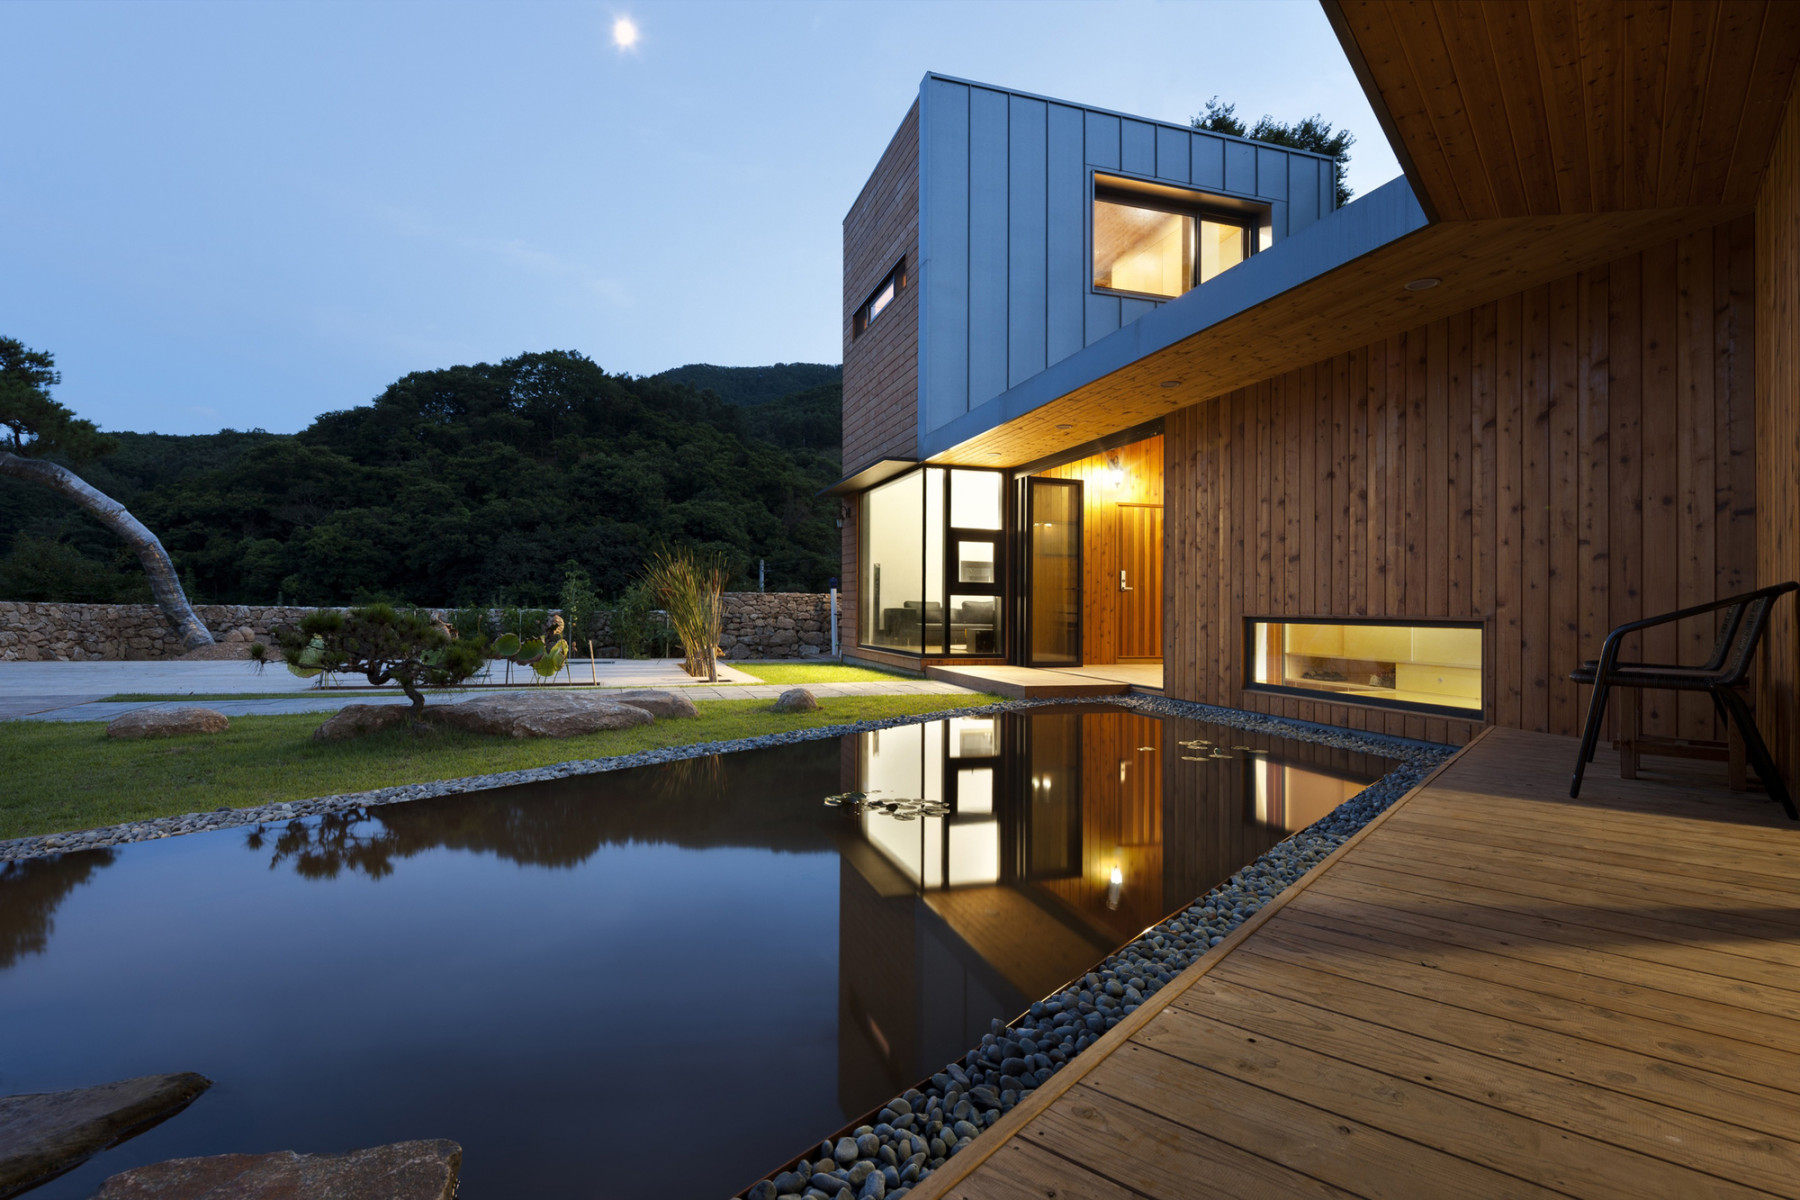 Ssangdalri House by Hyunjoon Yoo Architects | Photo © Youngchae Park